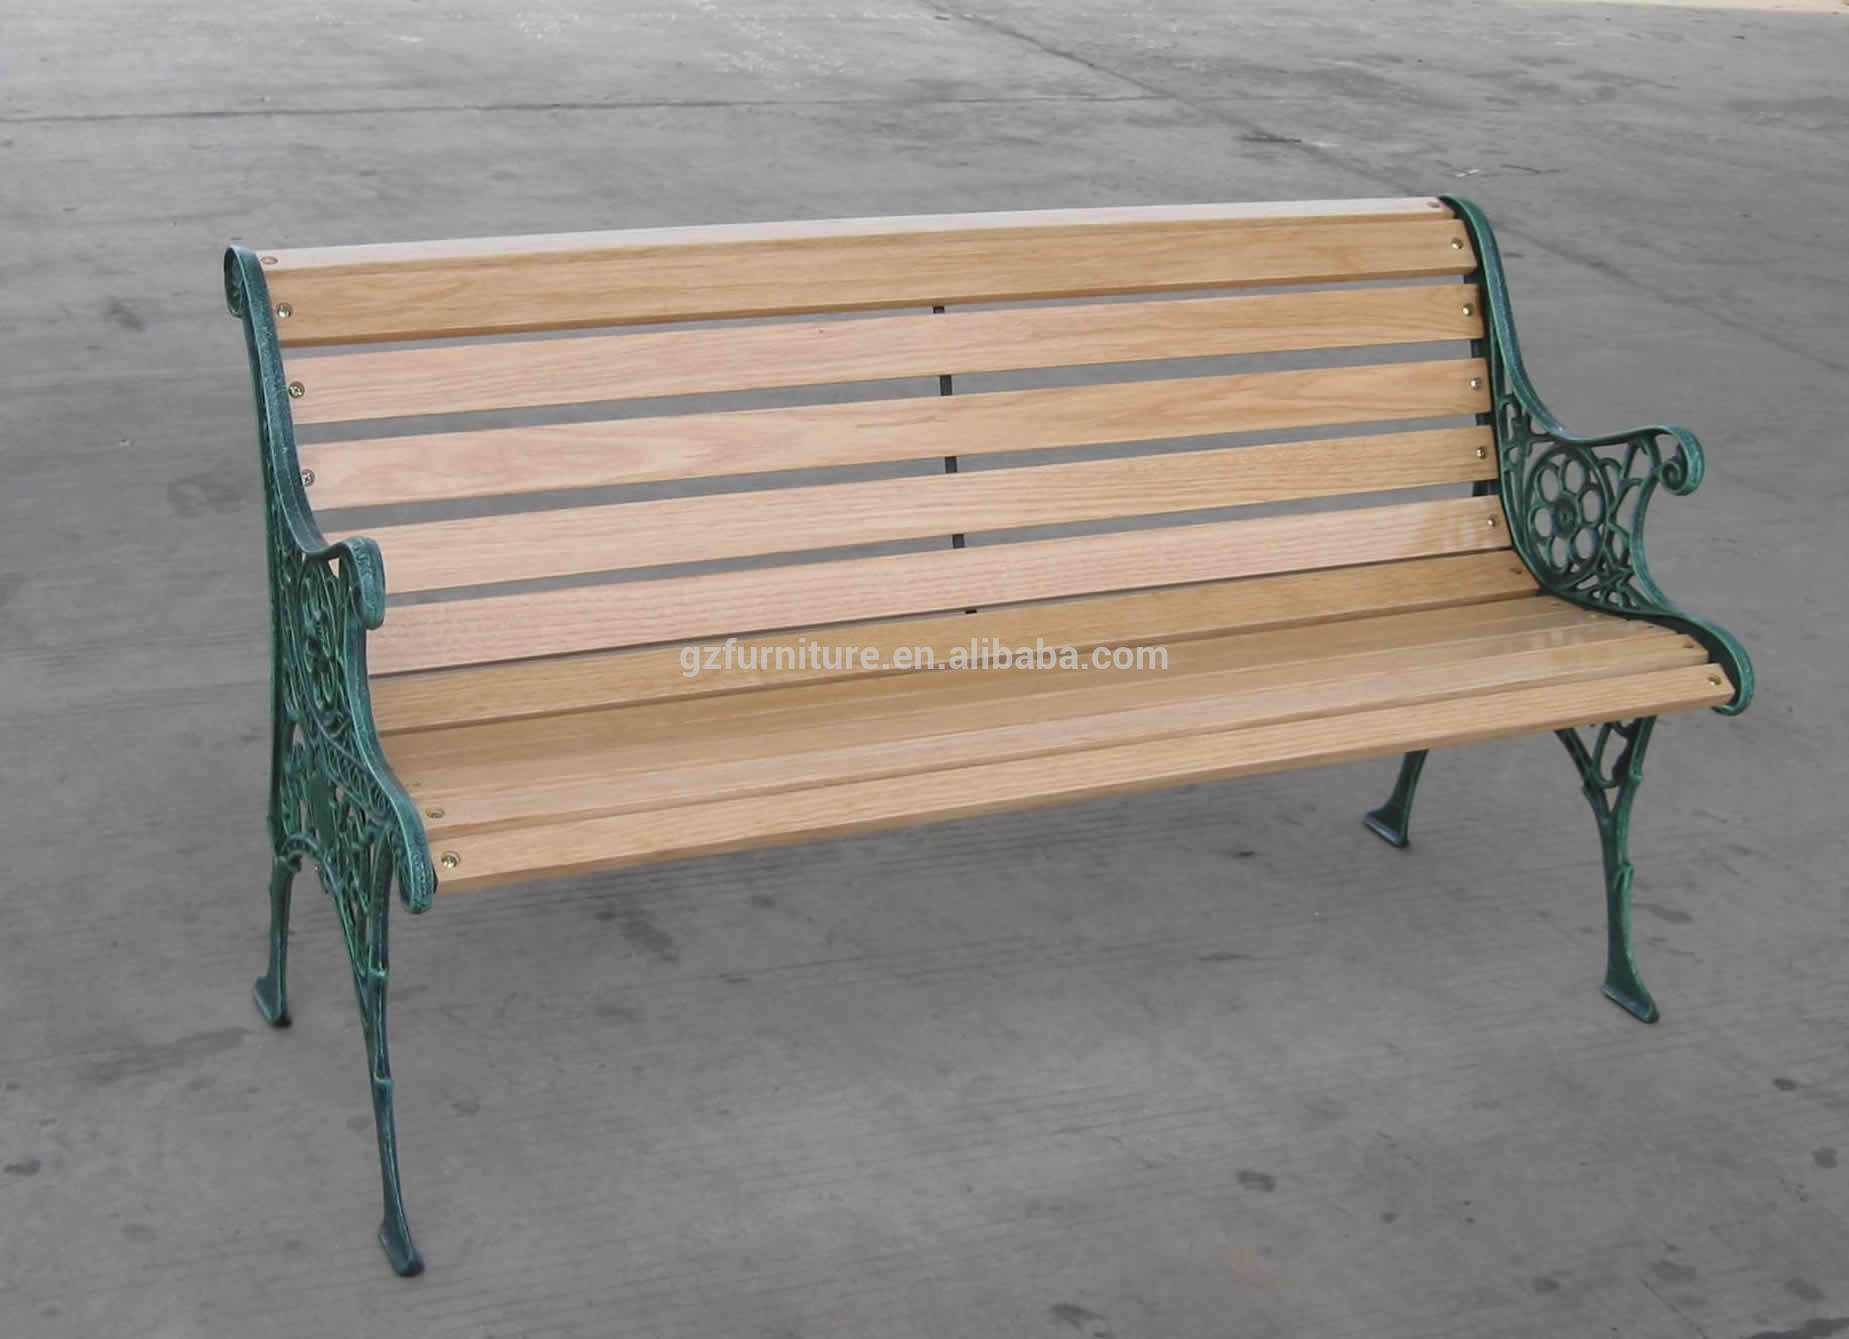 wood chair parts suppliers swing amsterdam replacement slats for garden bench shapeyourminds